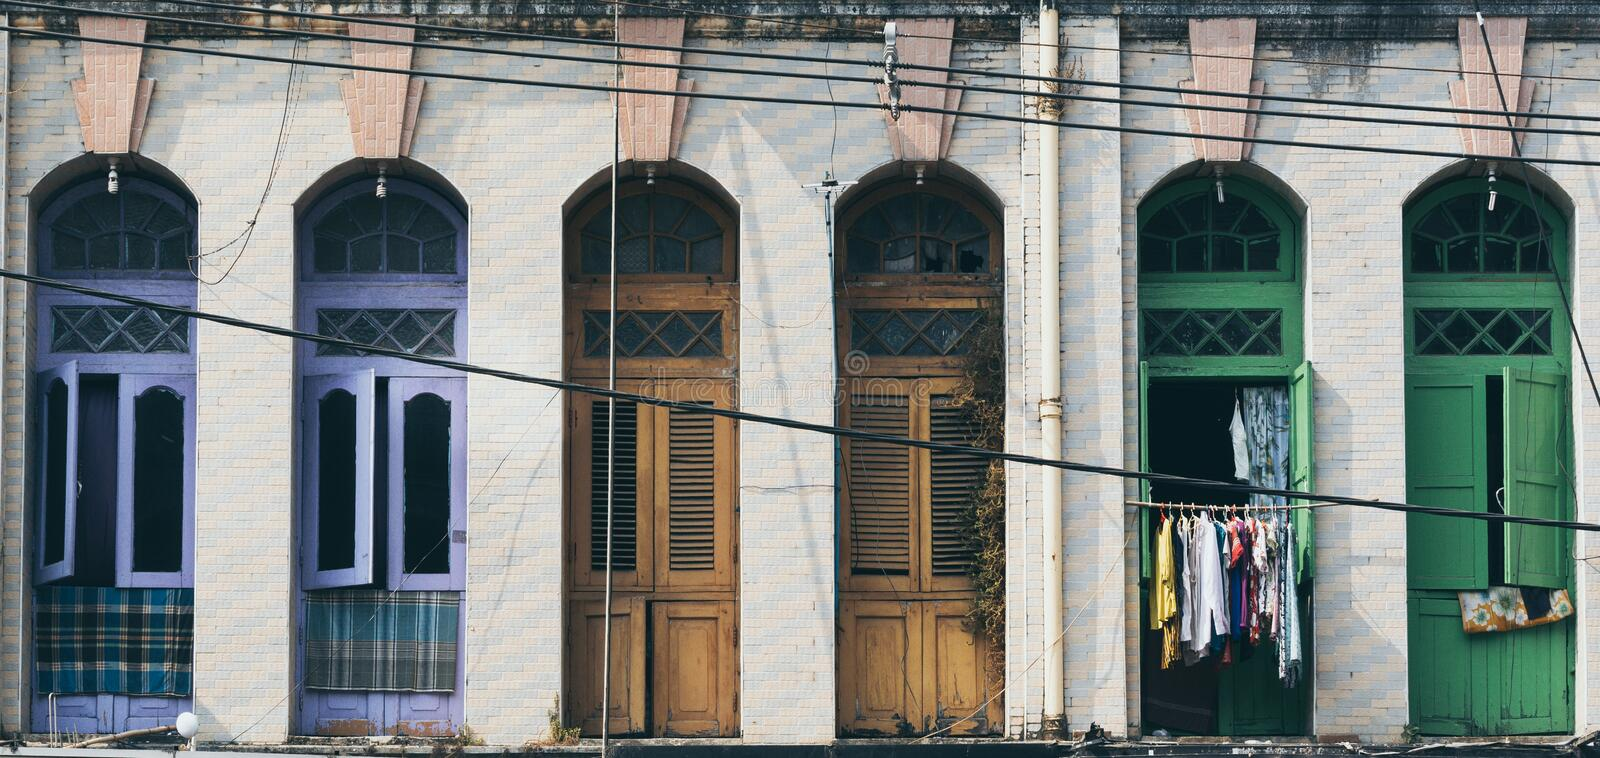 Colonial style balcony doors and windows in Yangon old town district, Myanmar stock image